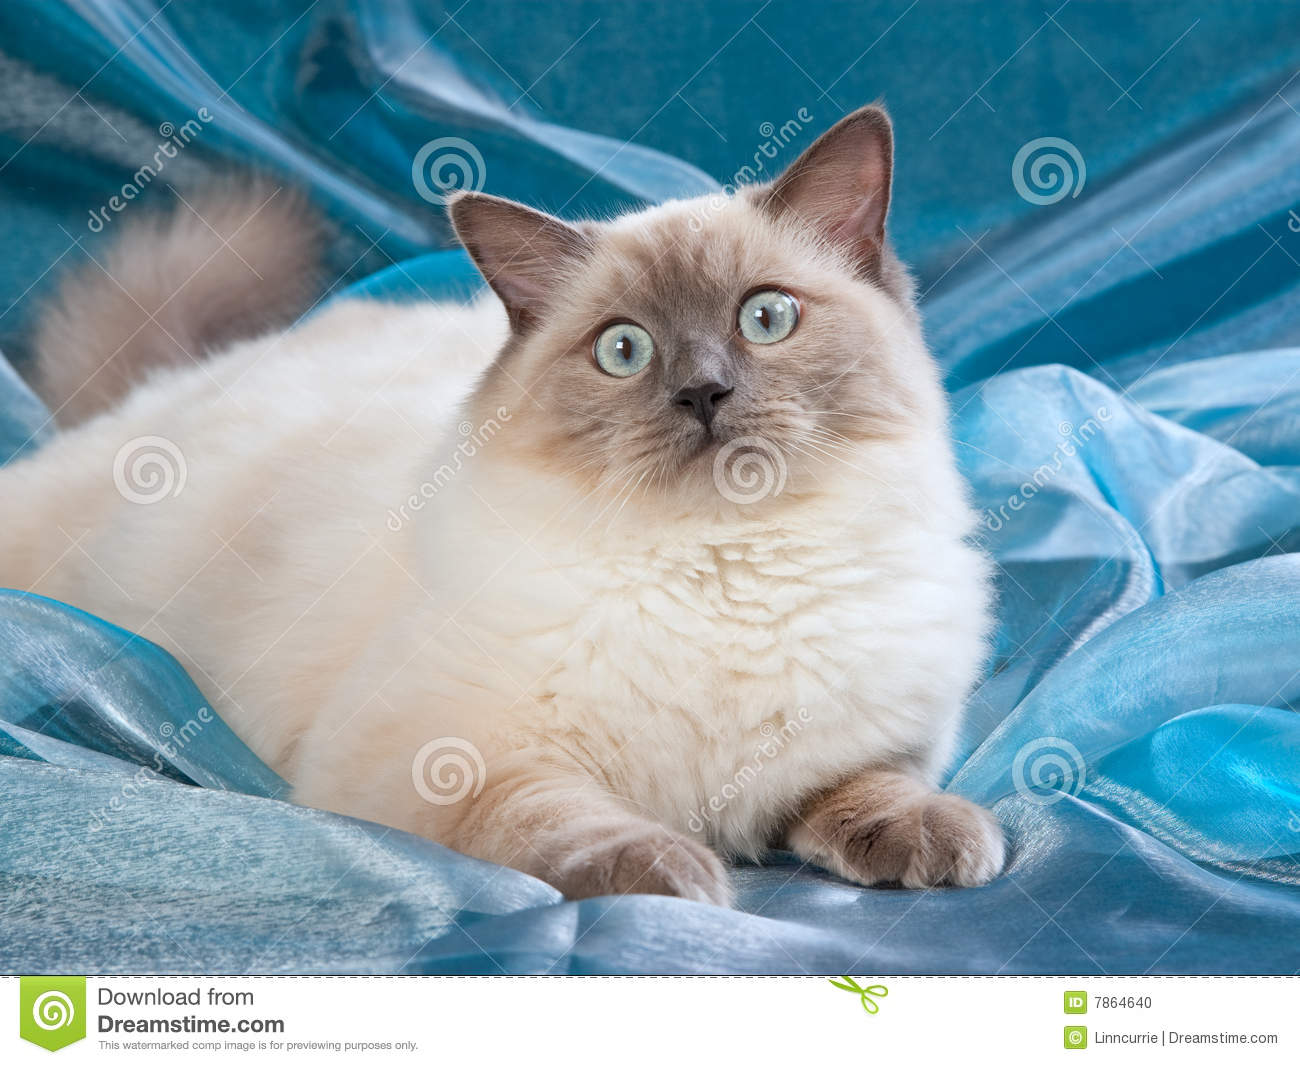 Ragdoll Blue Point Cat Stock Photo - Image: 7864640